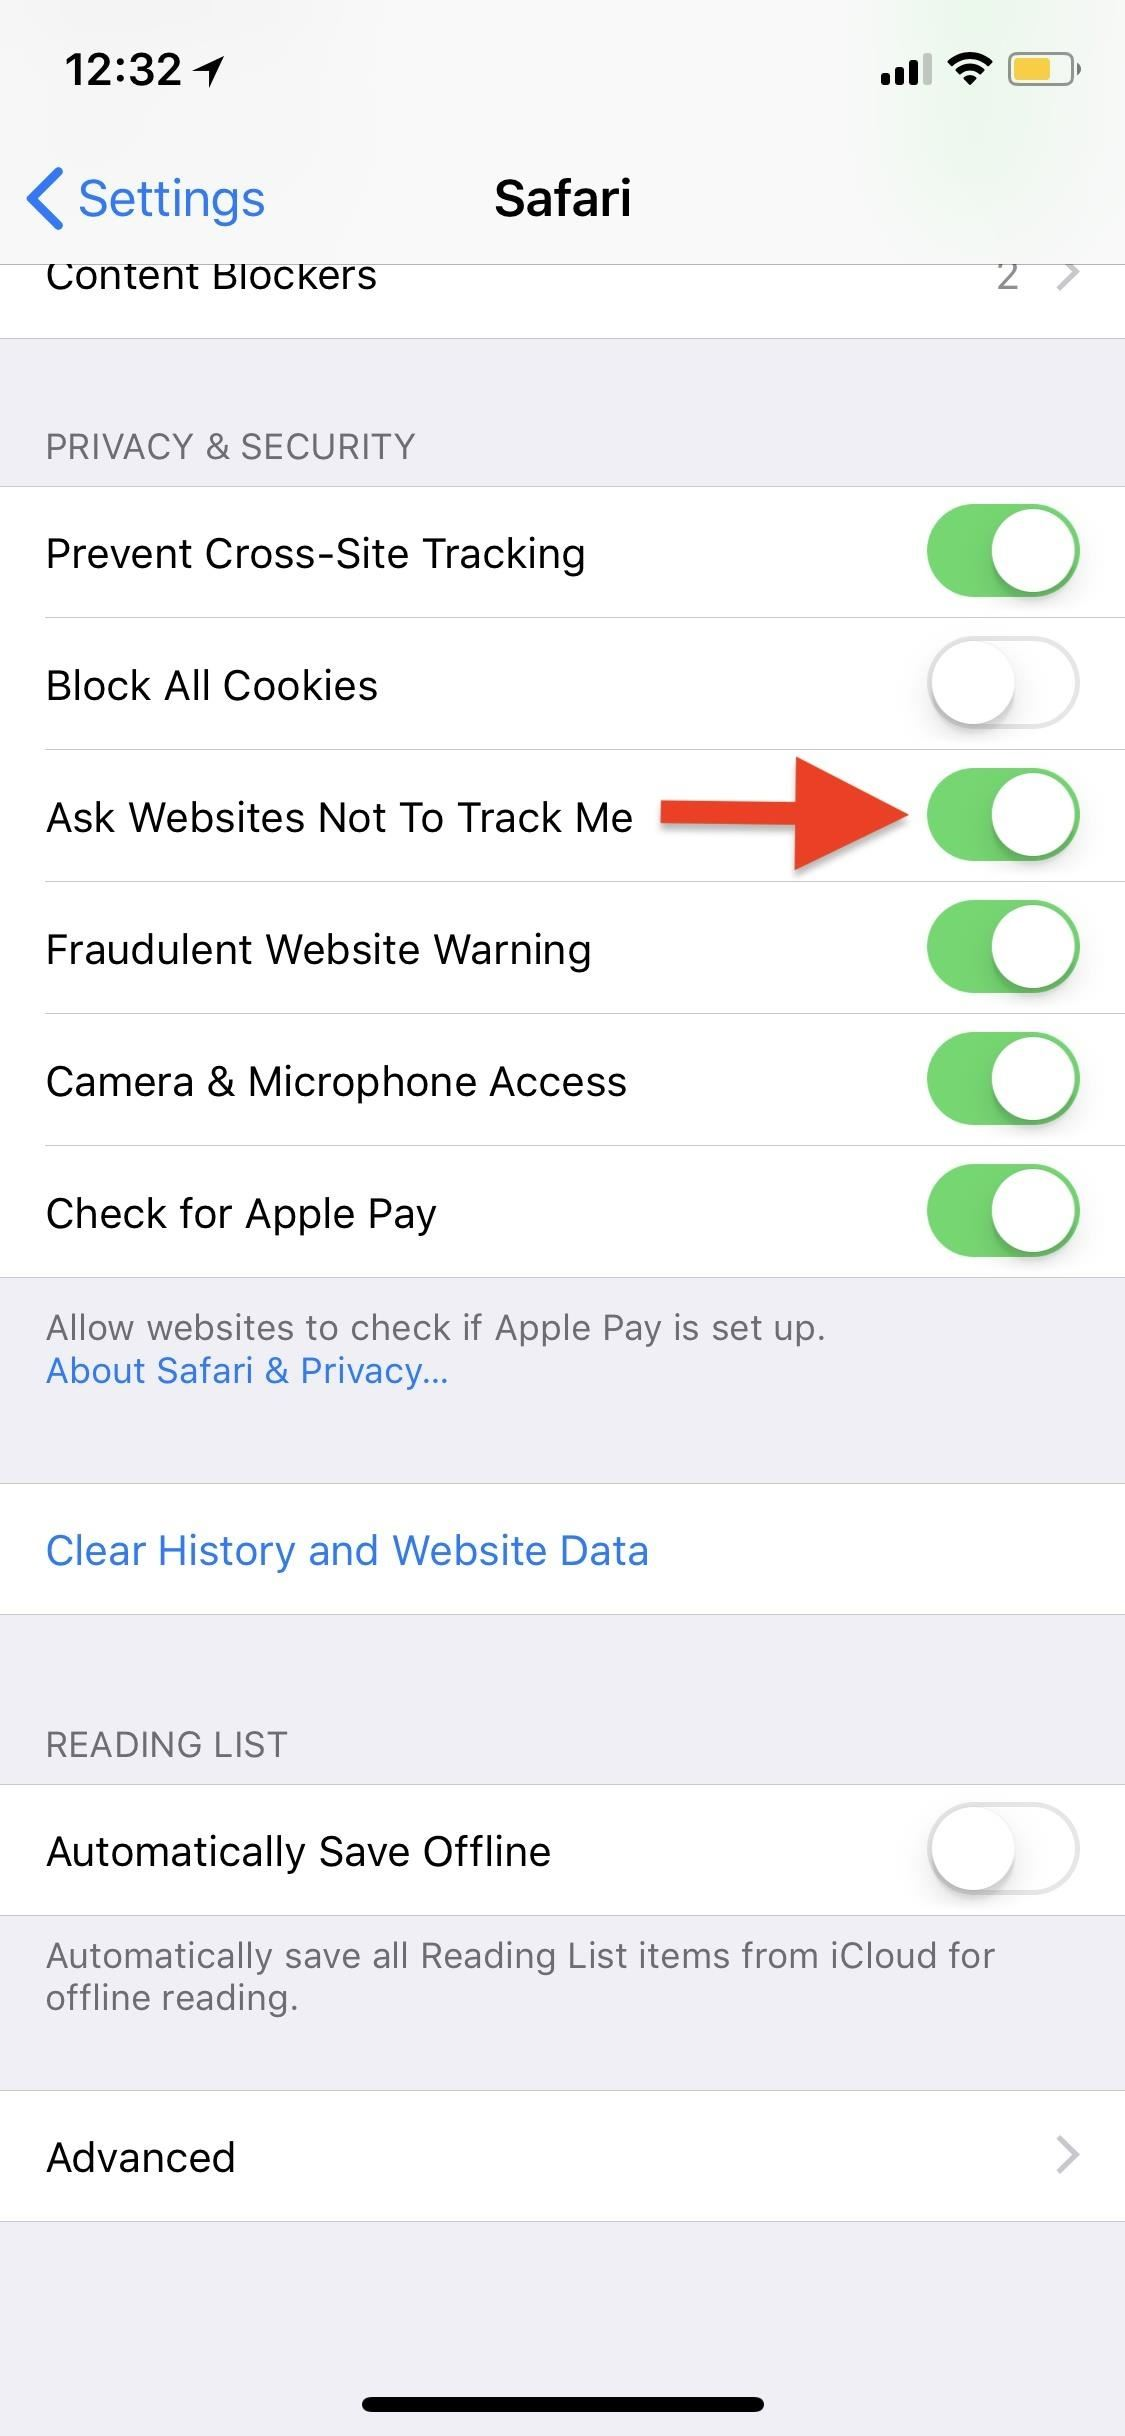 Safari 101: How to Ask Websites & Advertisers Not to Track Your Browsing Activity